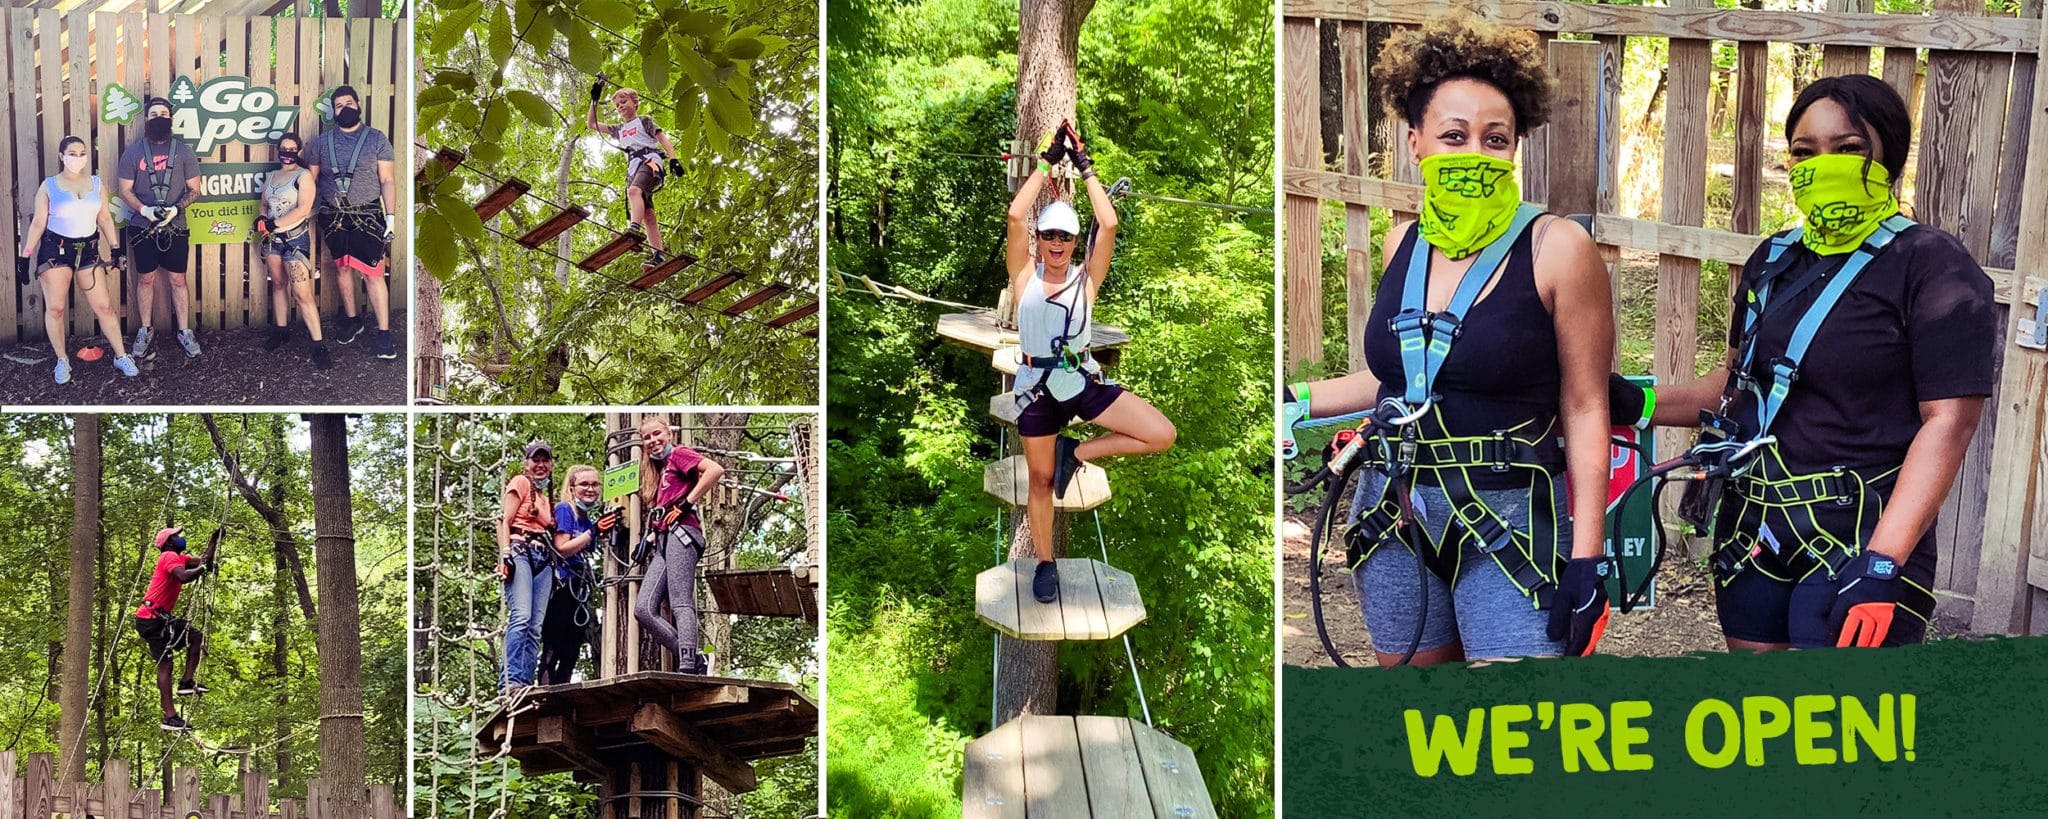 Go ape treetop adventure and zipline guests on the obstacles in the trees